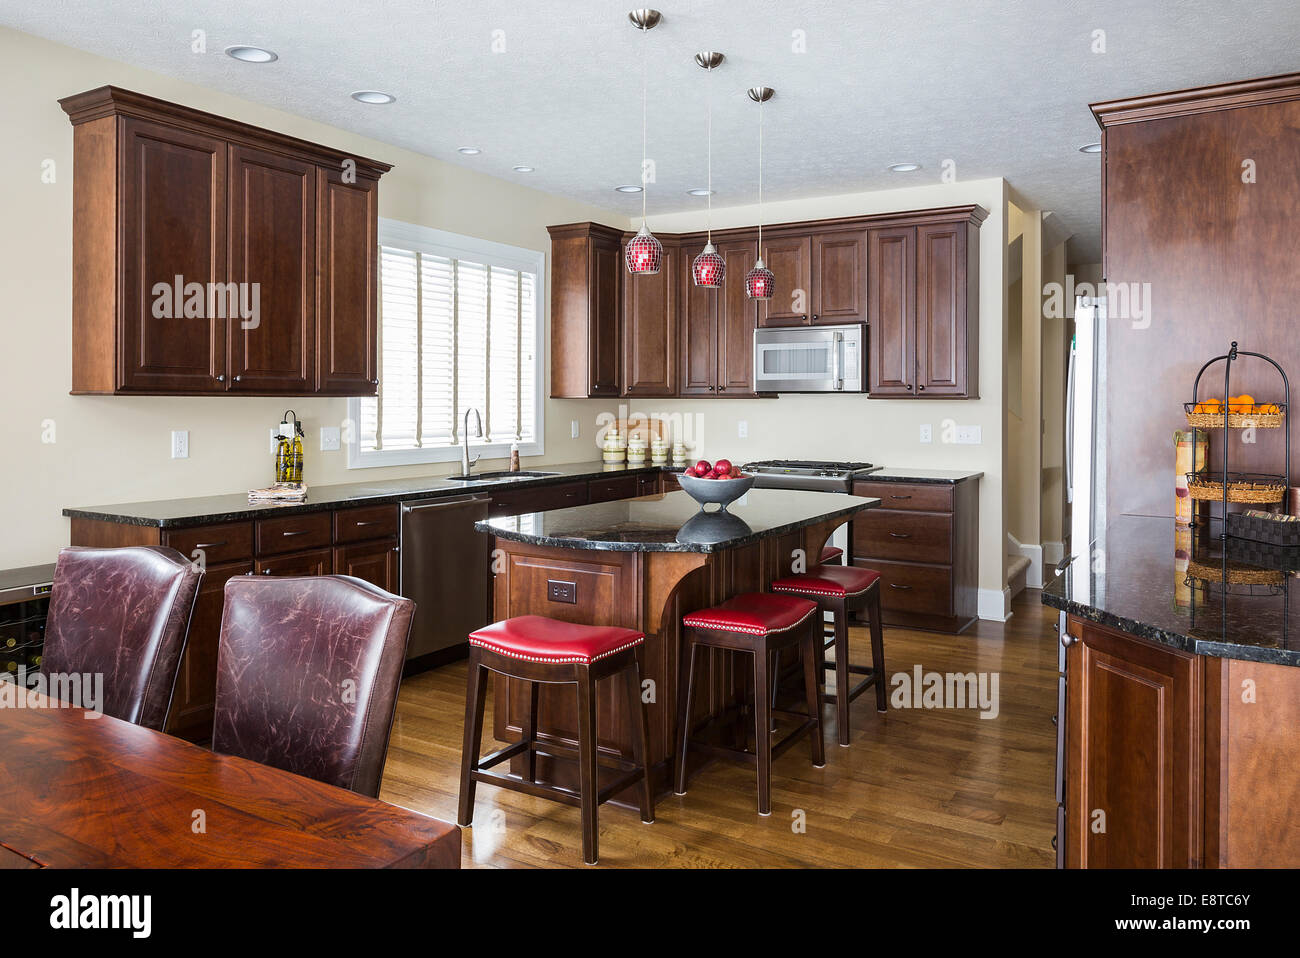 Kitchen Island Table And Cabinets In Modern Kitchen Stock Photo Alamy